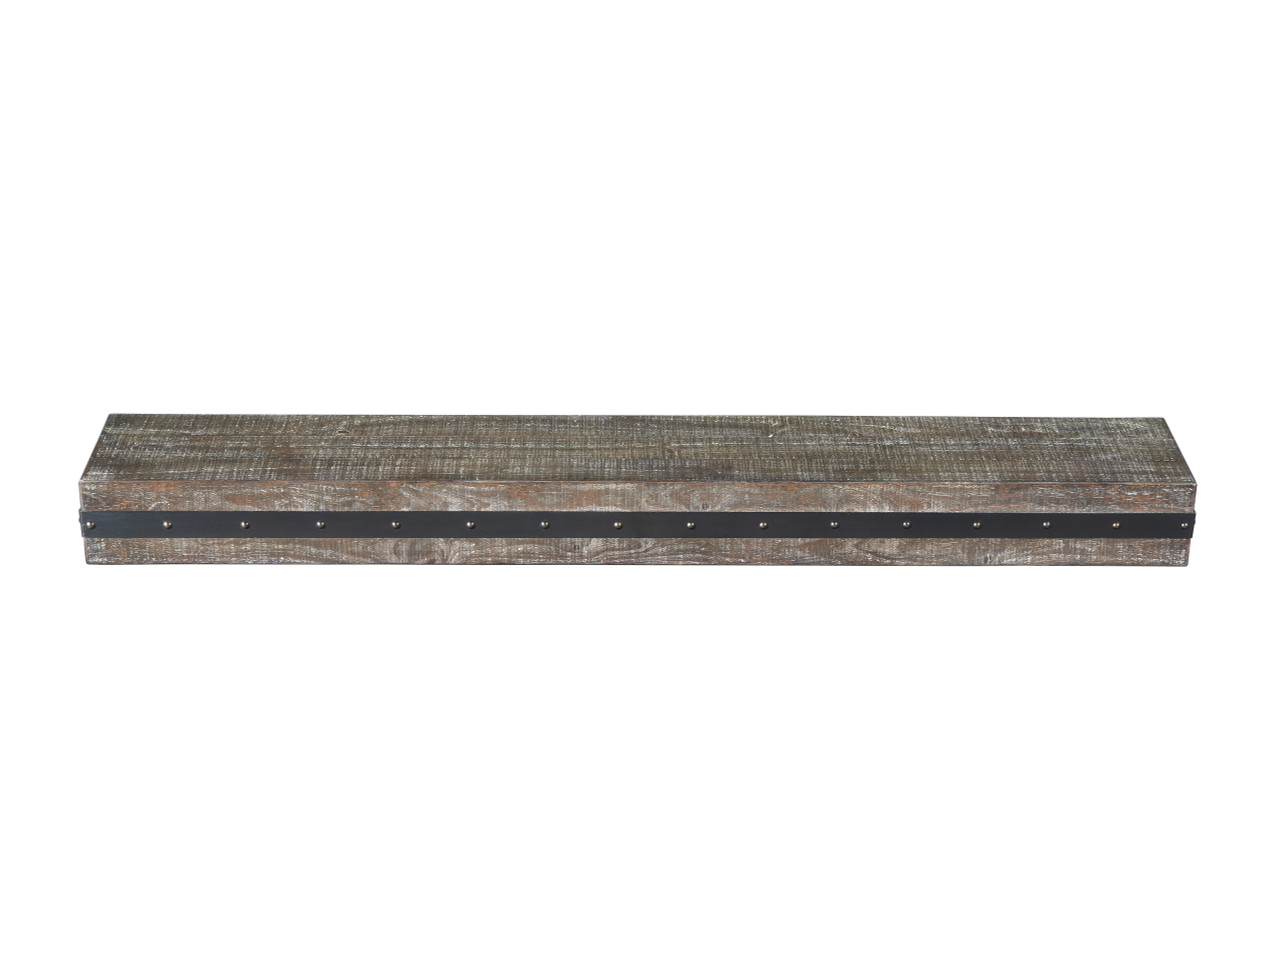 The Bedford Mantel Shelf Gristmill Finish Top View